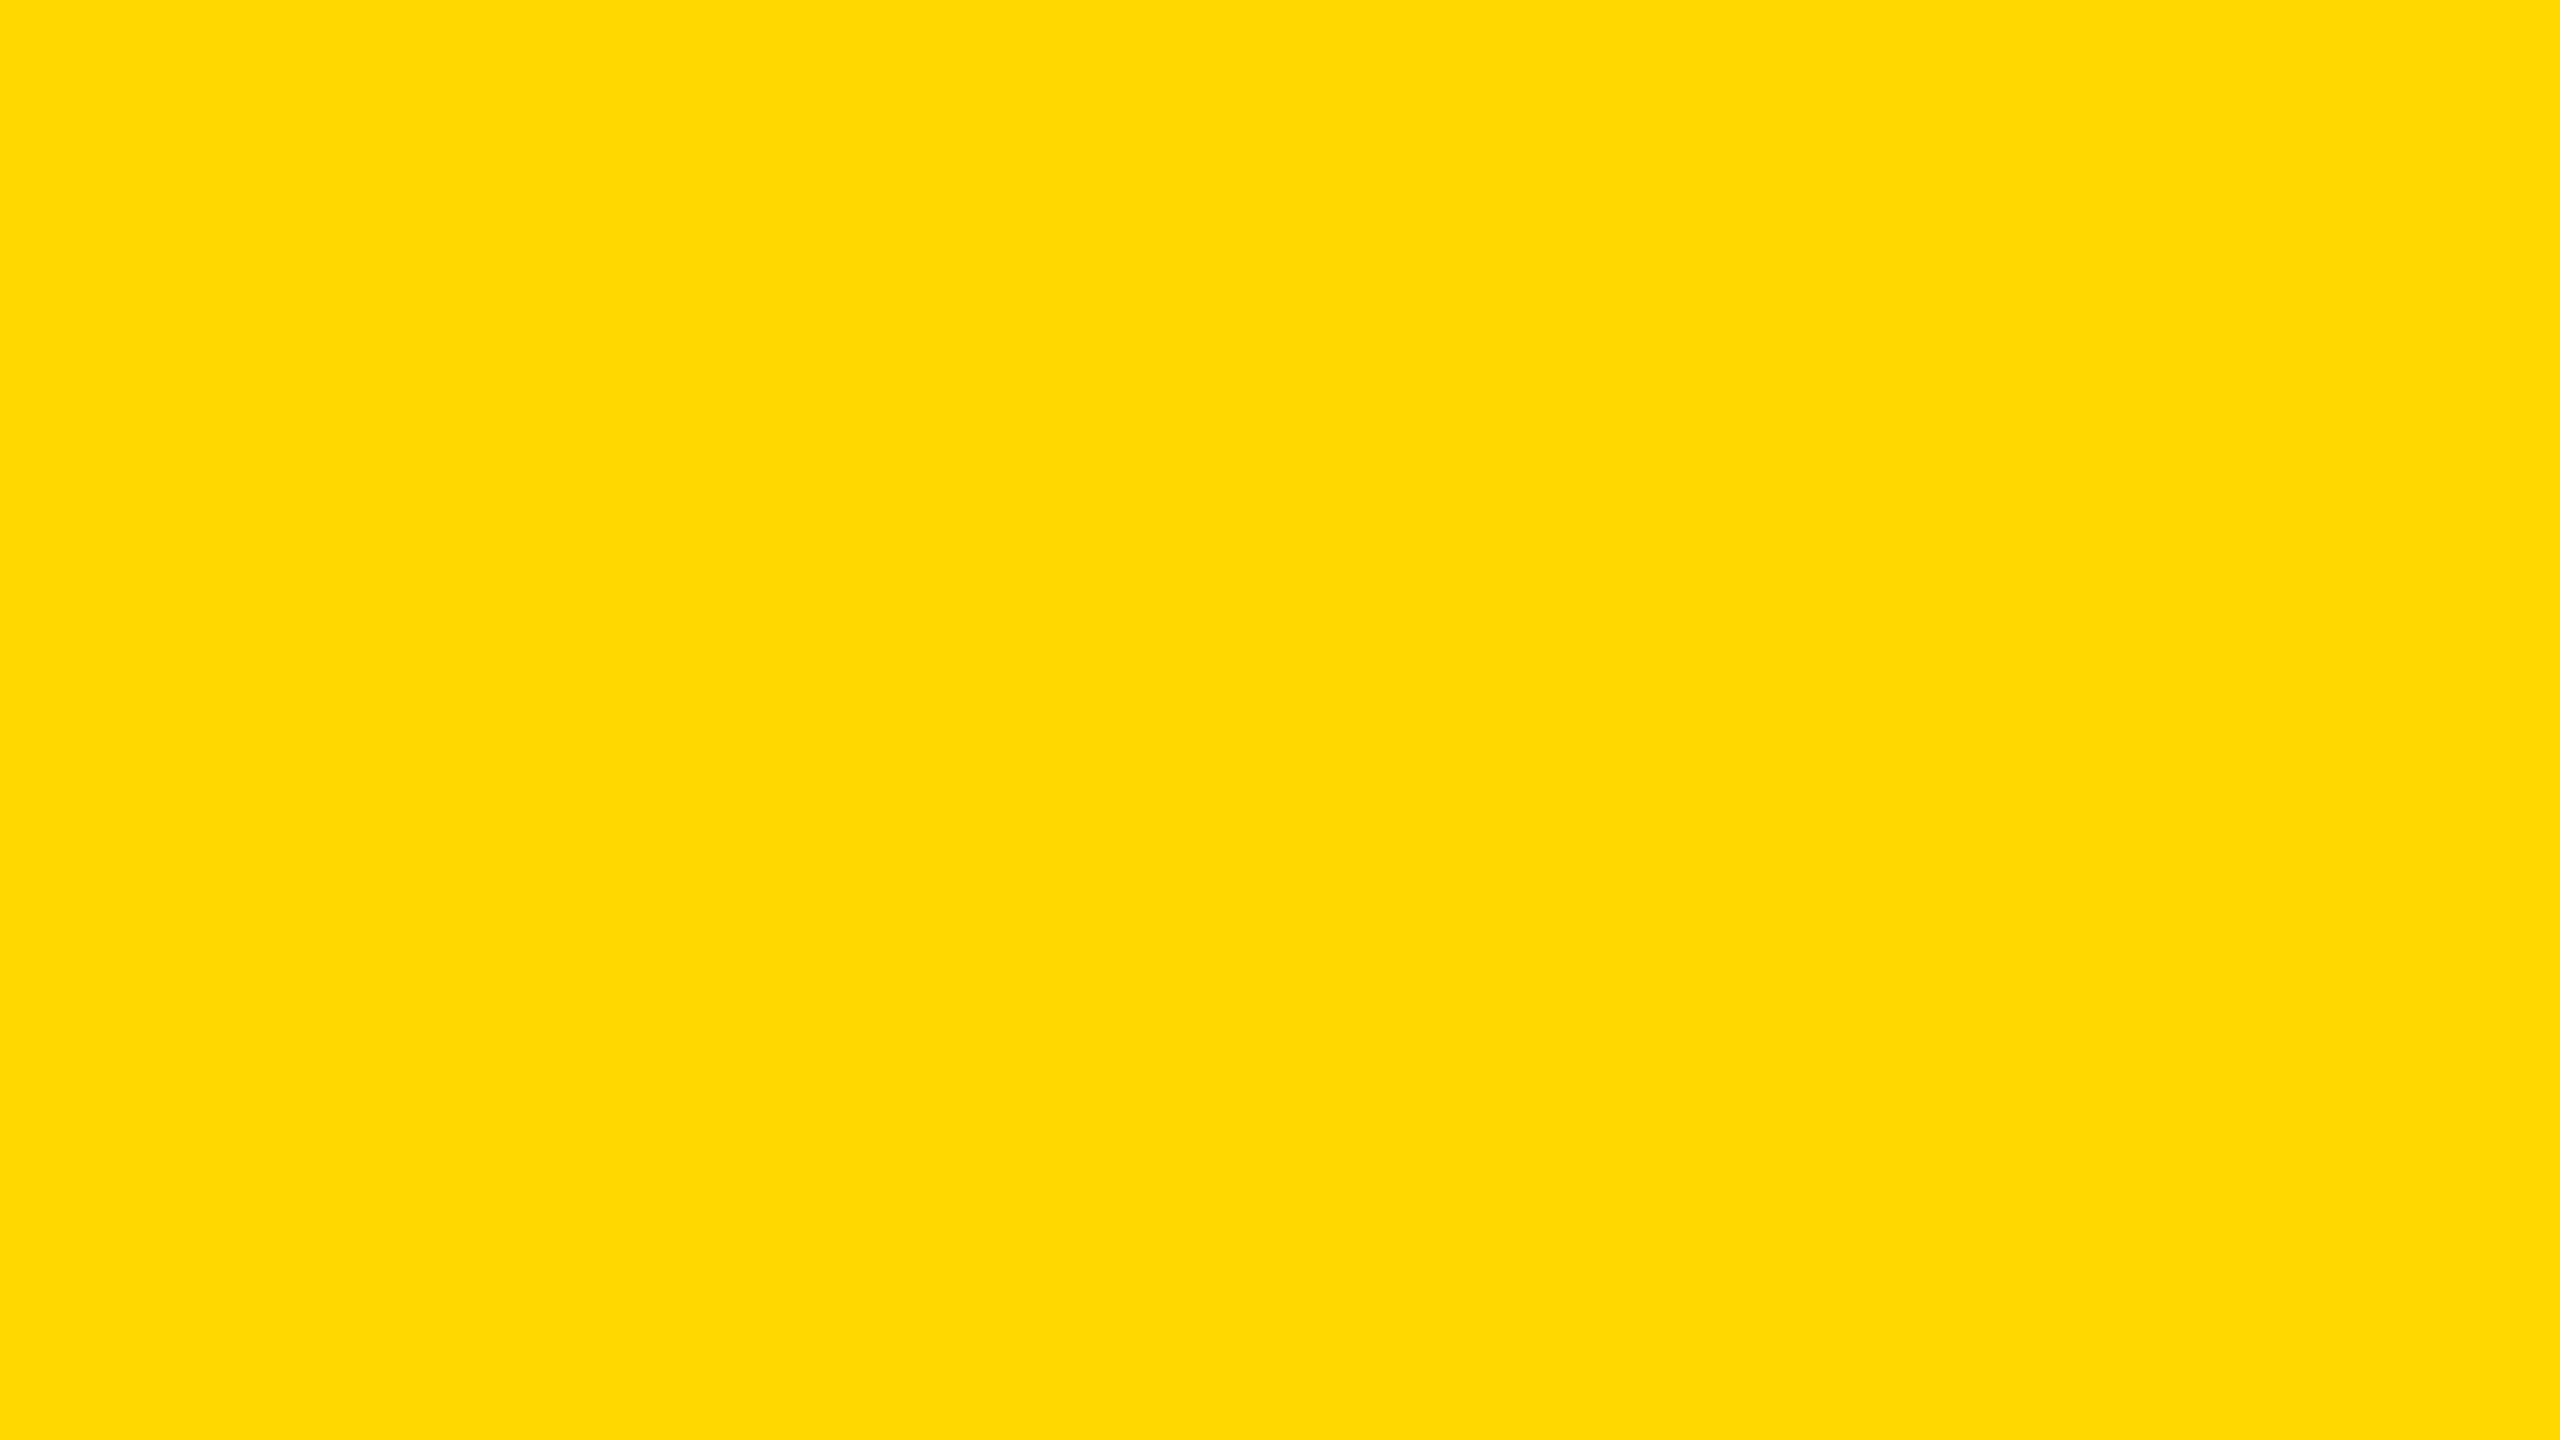 Yellow Awesome Background HD